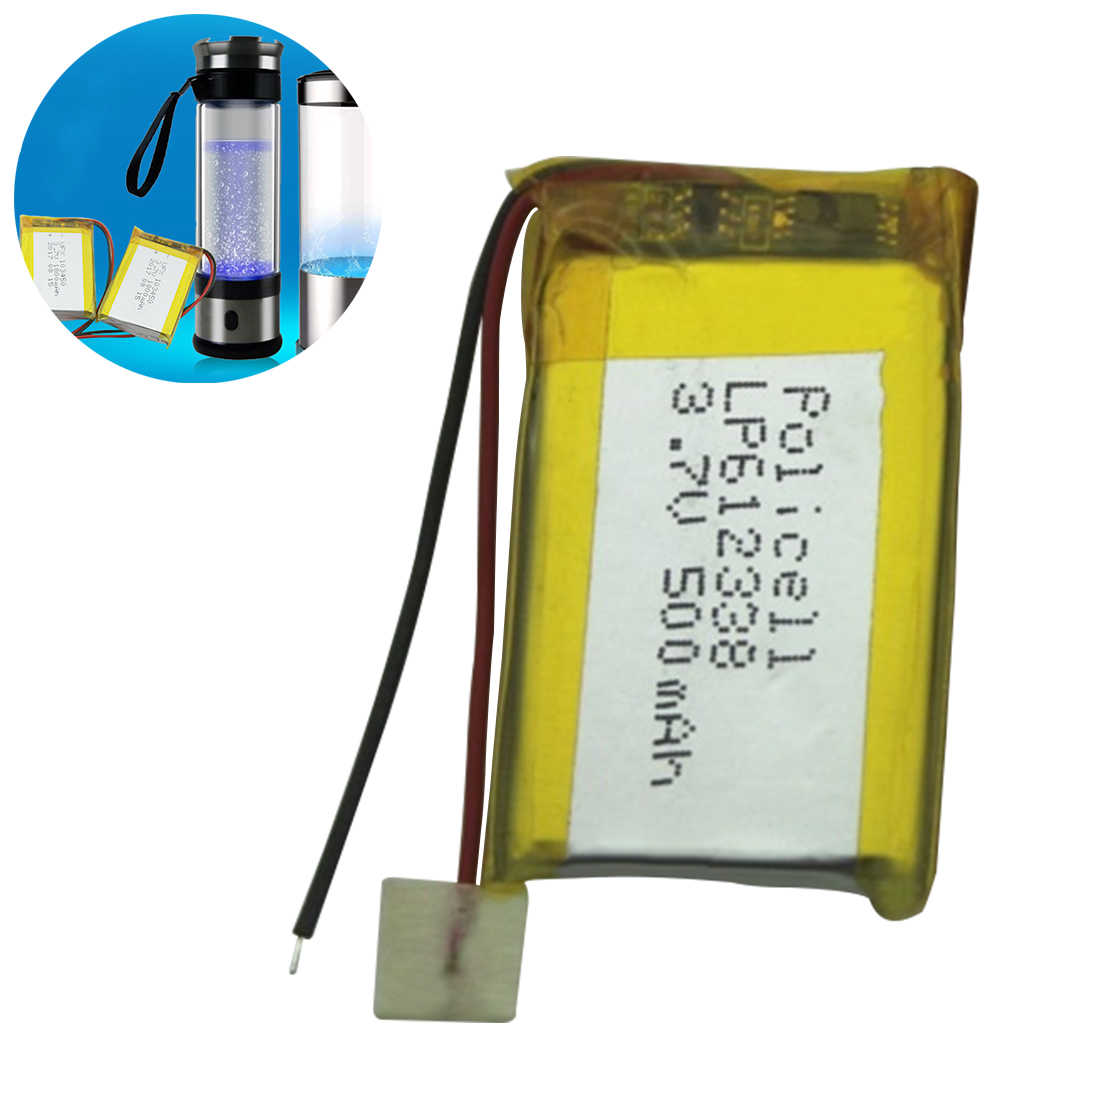 3.7V 500mAh <font><b>612338</b></font> Lithium Polymer Li-Po Li ion Rechargeable Battery Lipo Cells for DVR GPS MP3 MP4 Cell Phone Speaker image